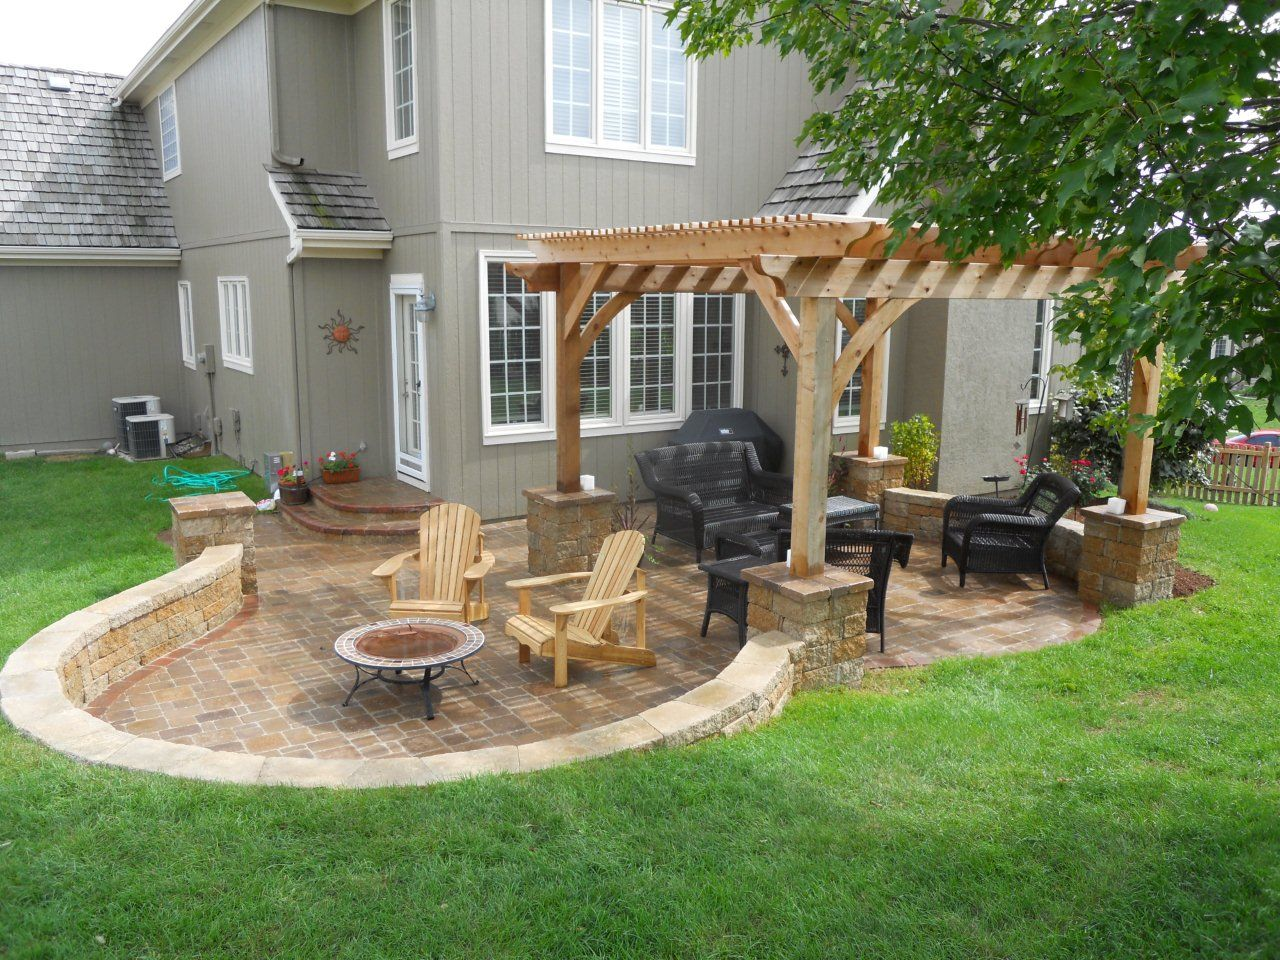 Backyard patio ideas for small spaces - 22 Awesome Pergola Patio Ideas More